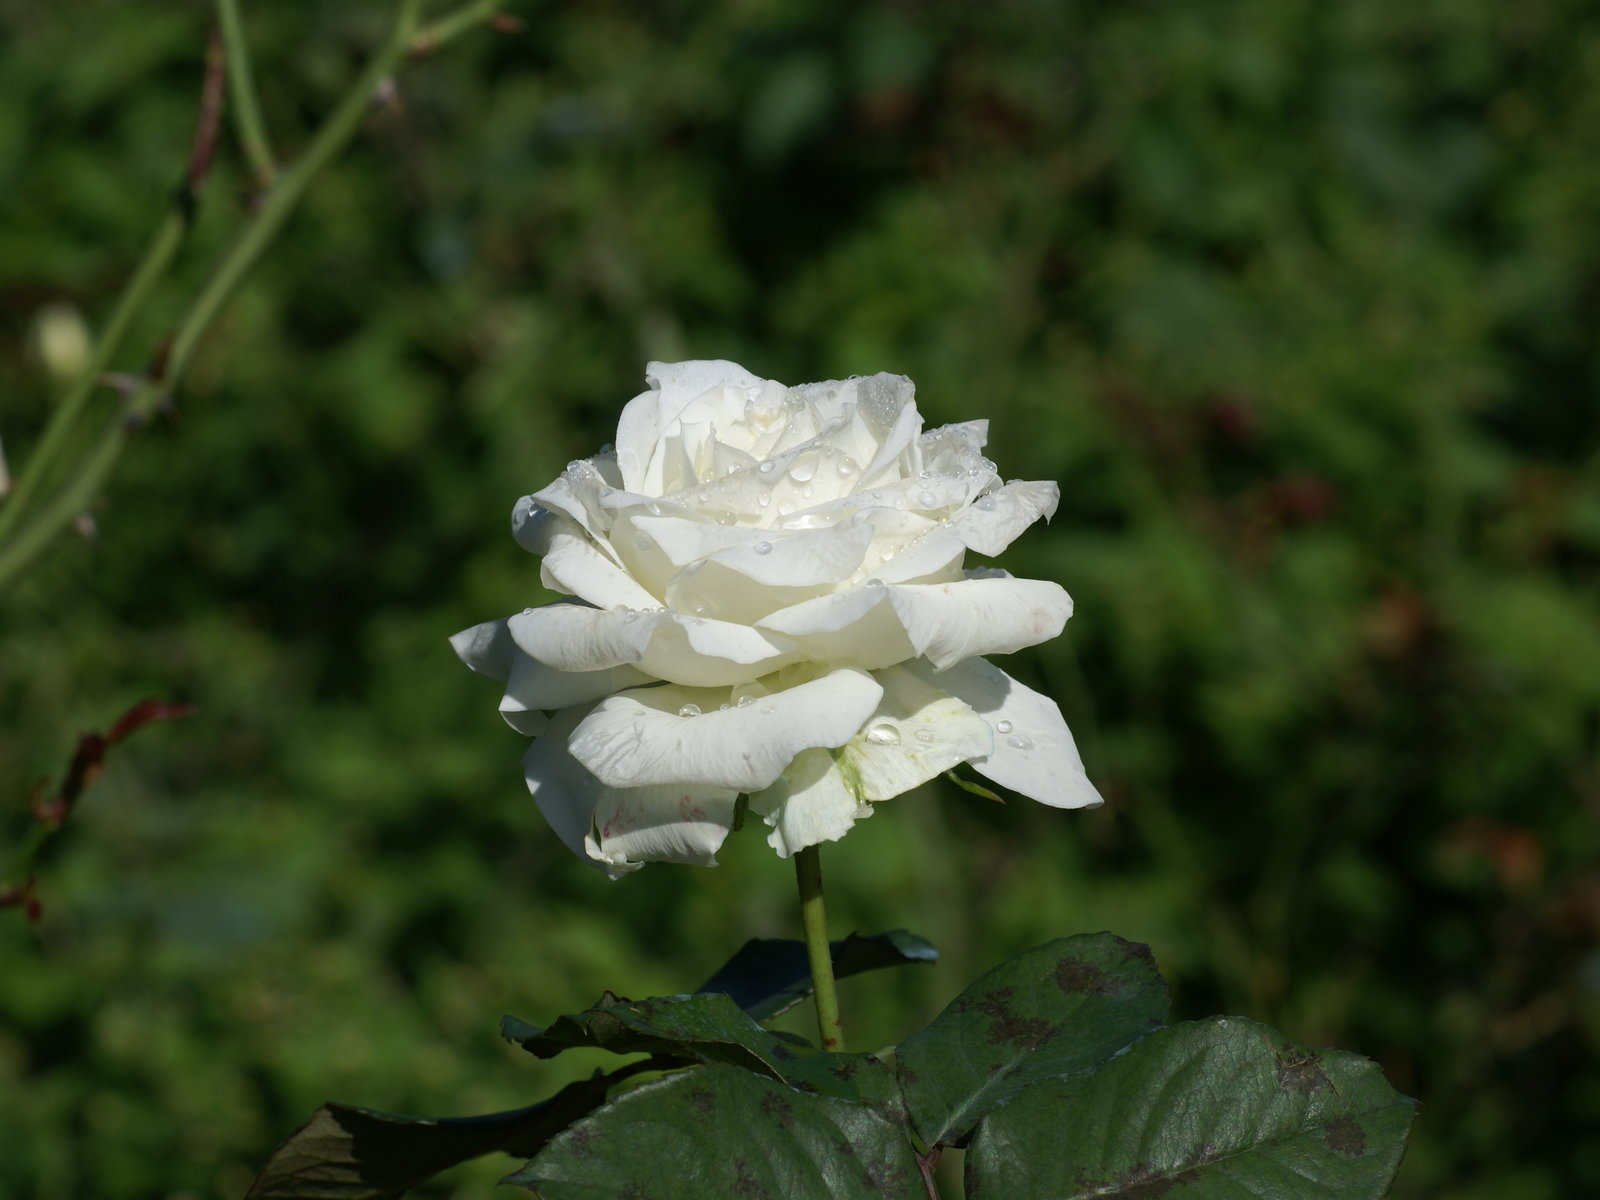 White Rose Flowers Wallpapers: New White Rose Flowers Wallpapers